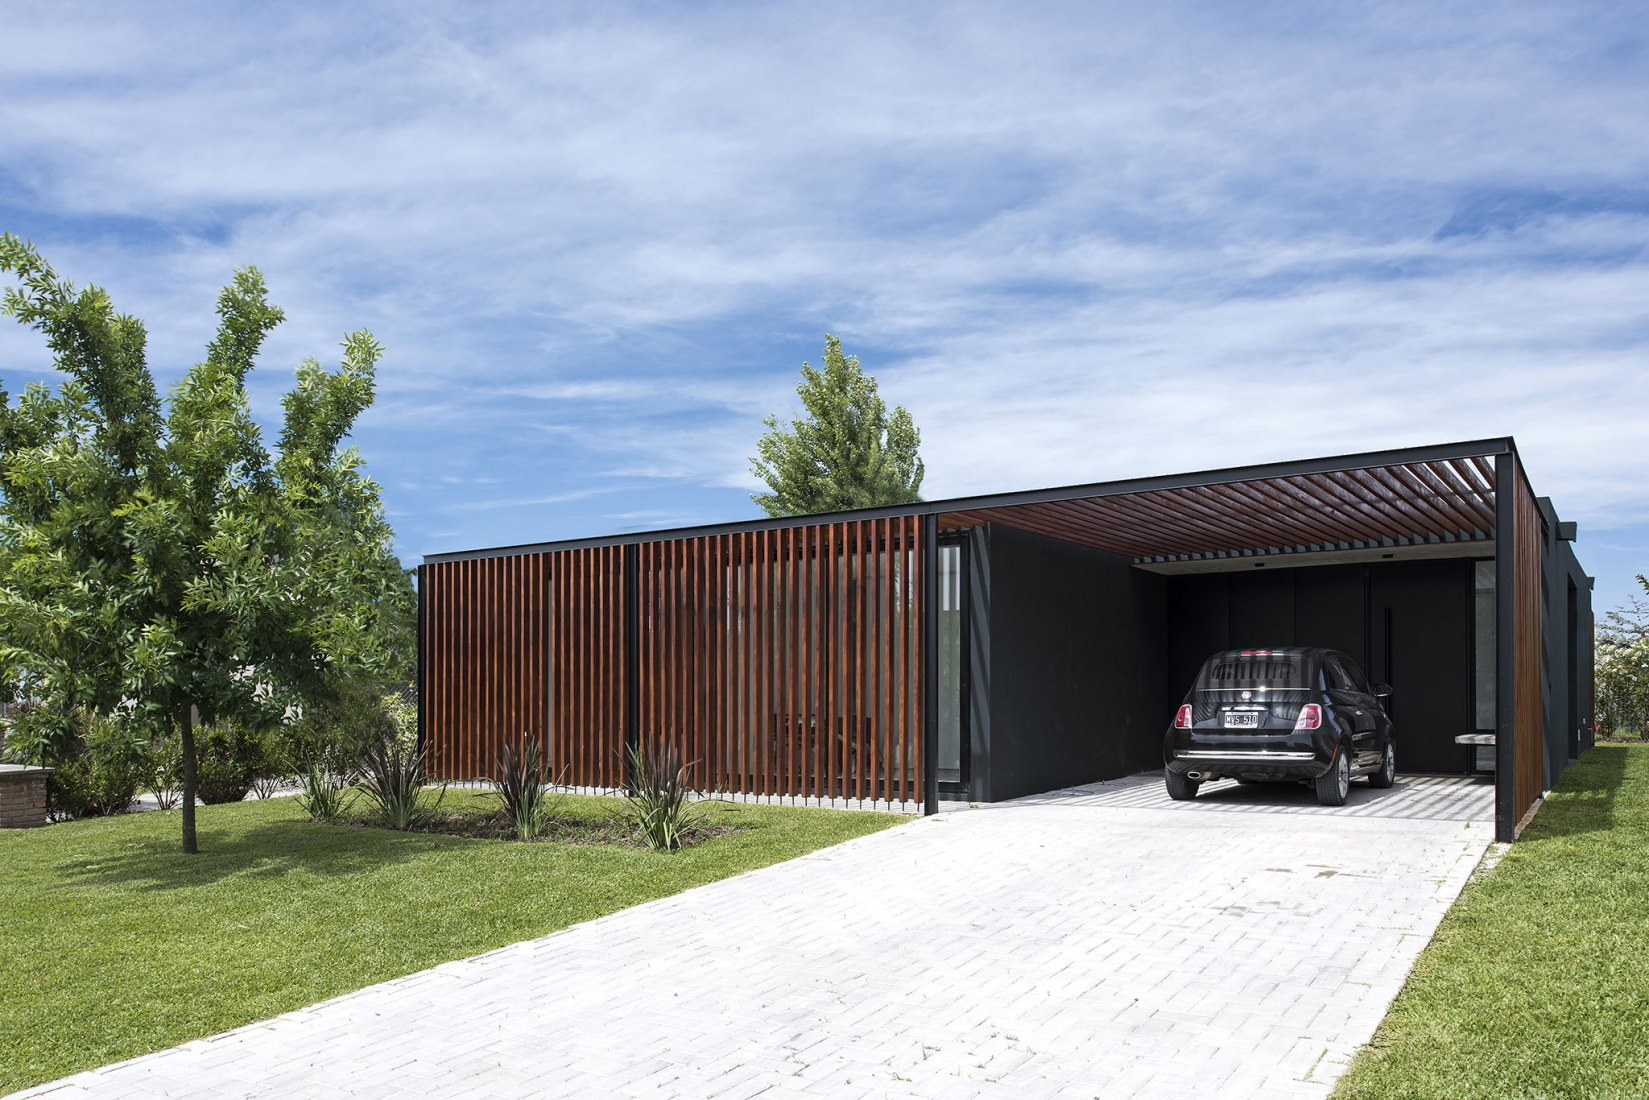 2LH Prototype single-family home by Luciano Kruk